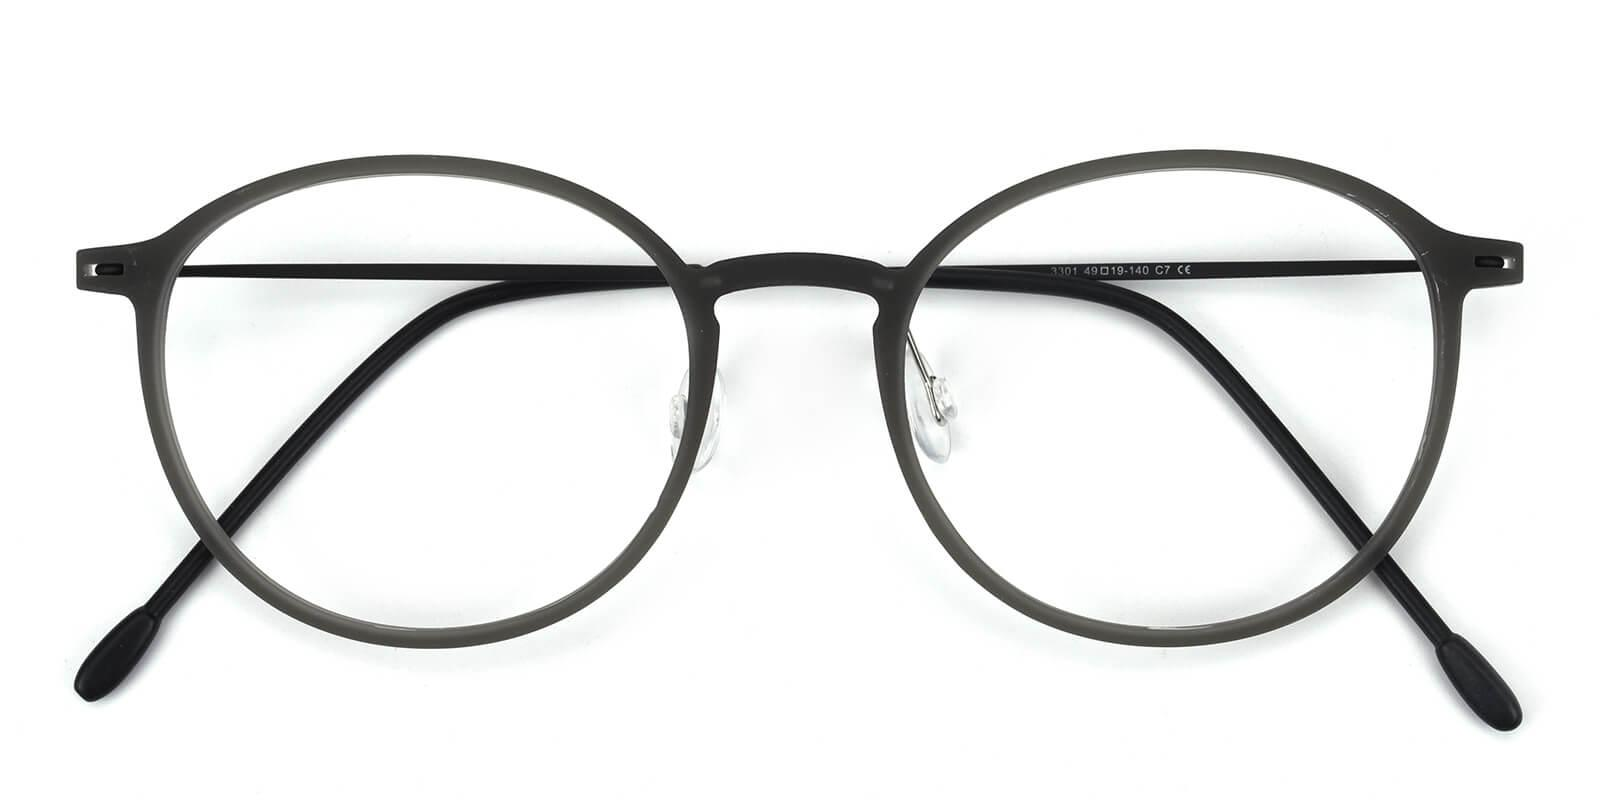 Yunda-Gray-Round-Combination-Eyeglasses-detail